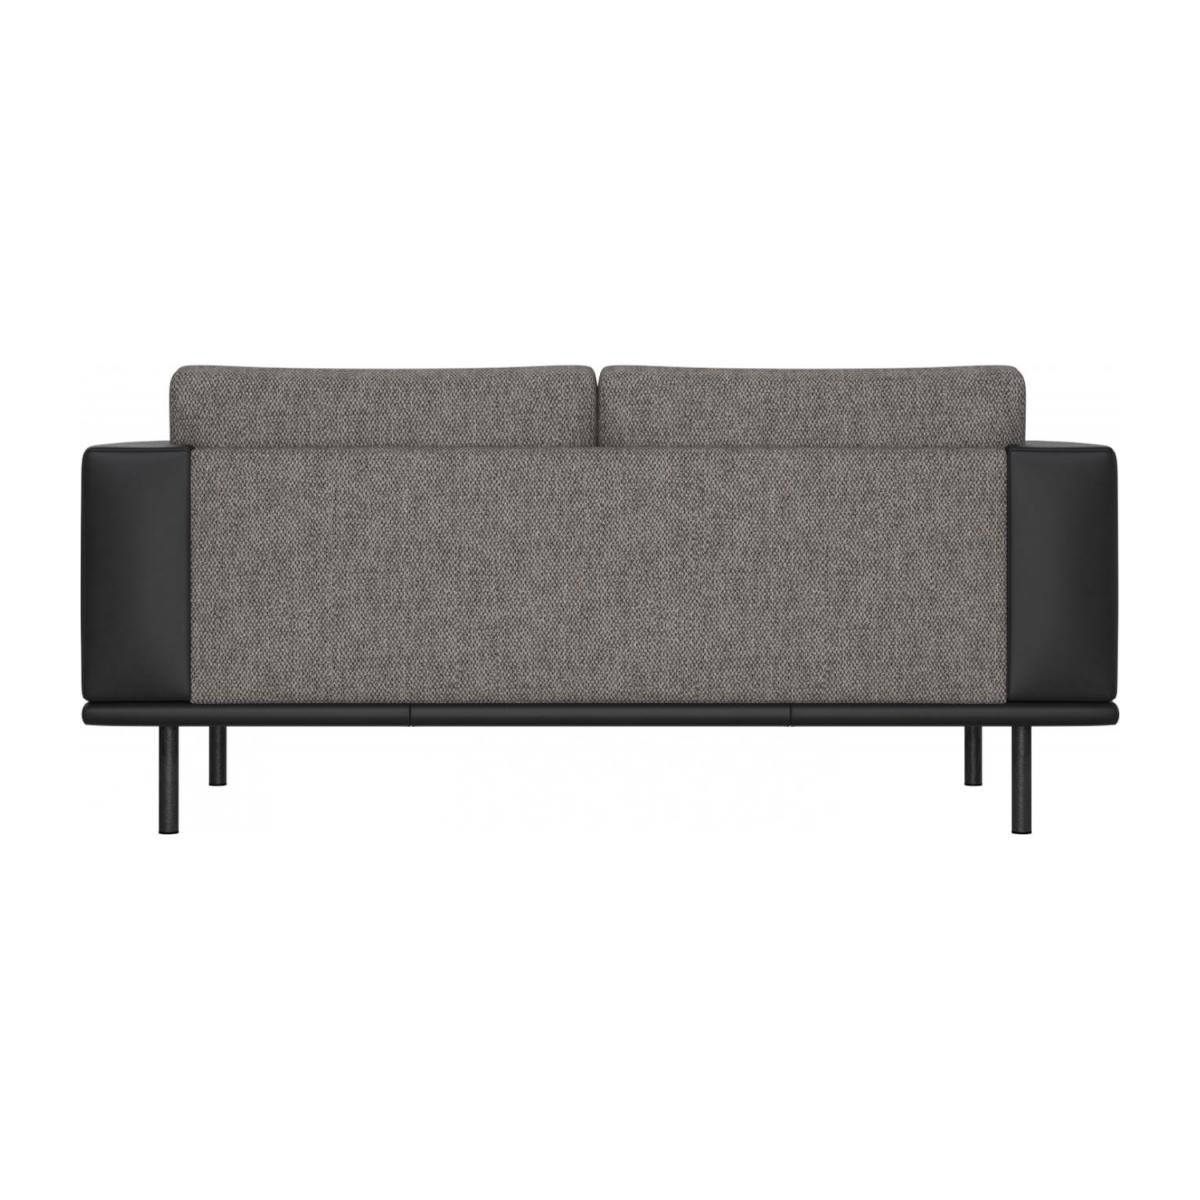 2 seater sofa in Bellagio fabric, night black with base and armrests in black leather n°4